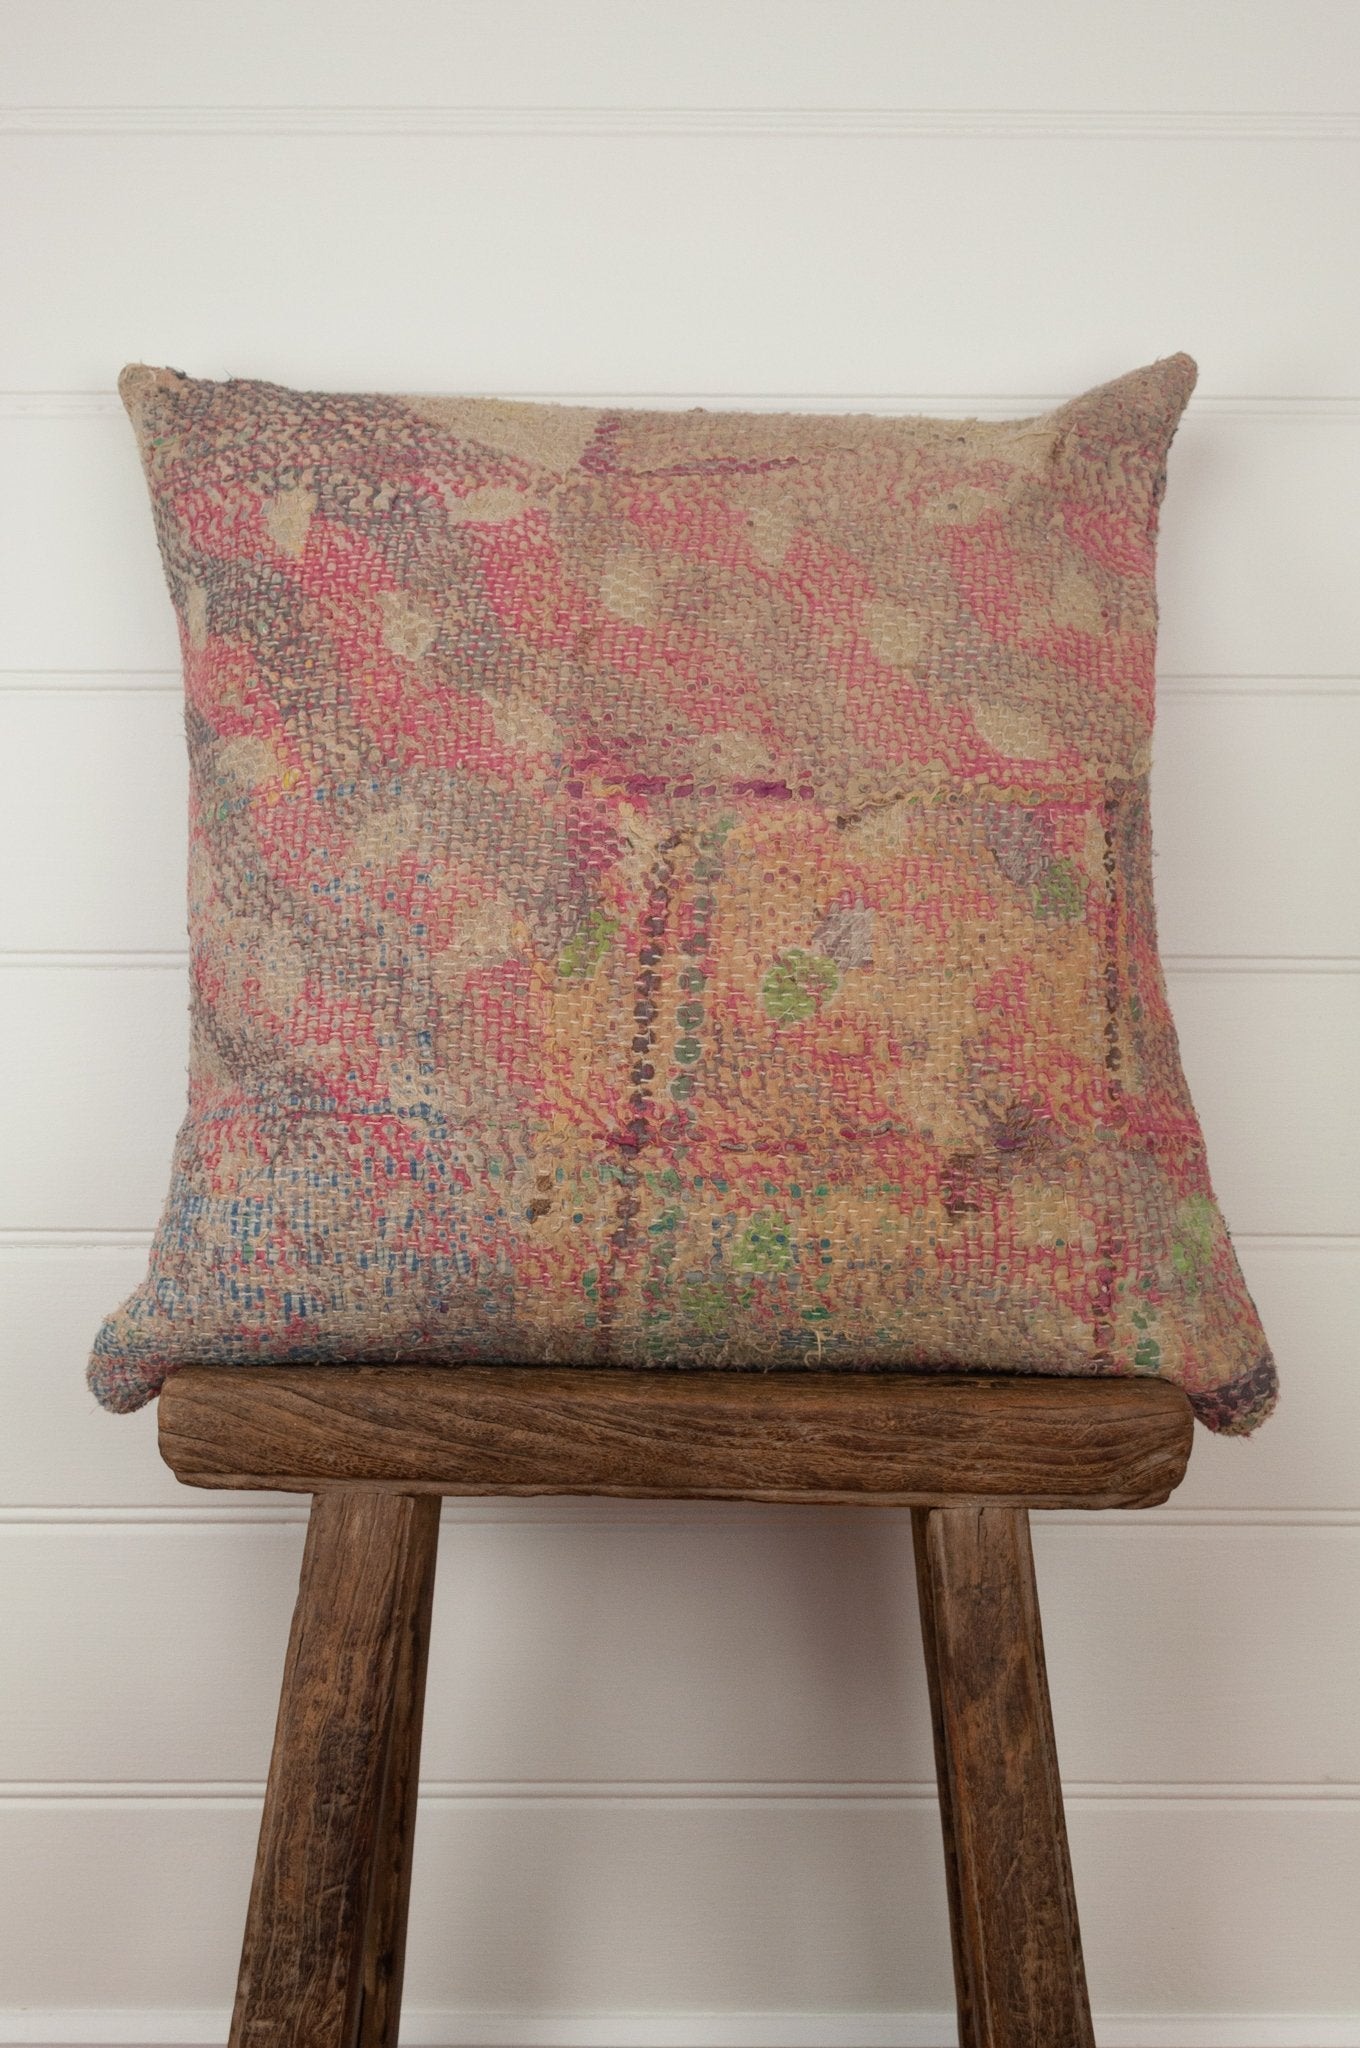 Vintage kantha cushion, in a soft floral palette of pinks, blues and lilacs, 45cm x 45cxm.